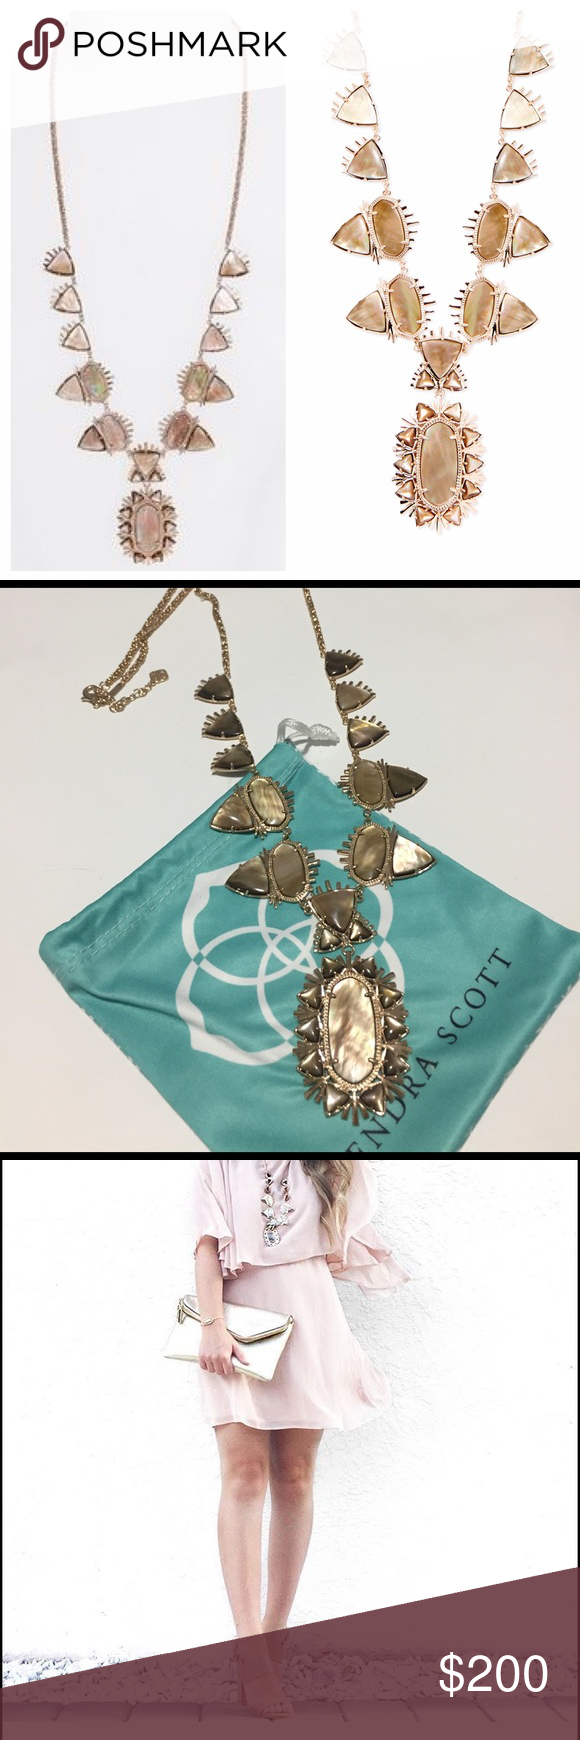 Kendra Scott 'Havana' Necklace in Brown Pearl Worn Once, in perfect condition (come with dust bag) Kendra Scott Jewelry Necklaces